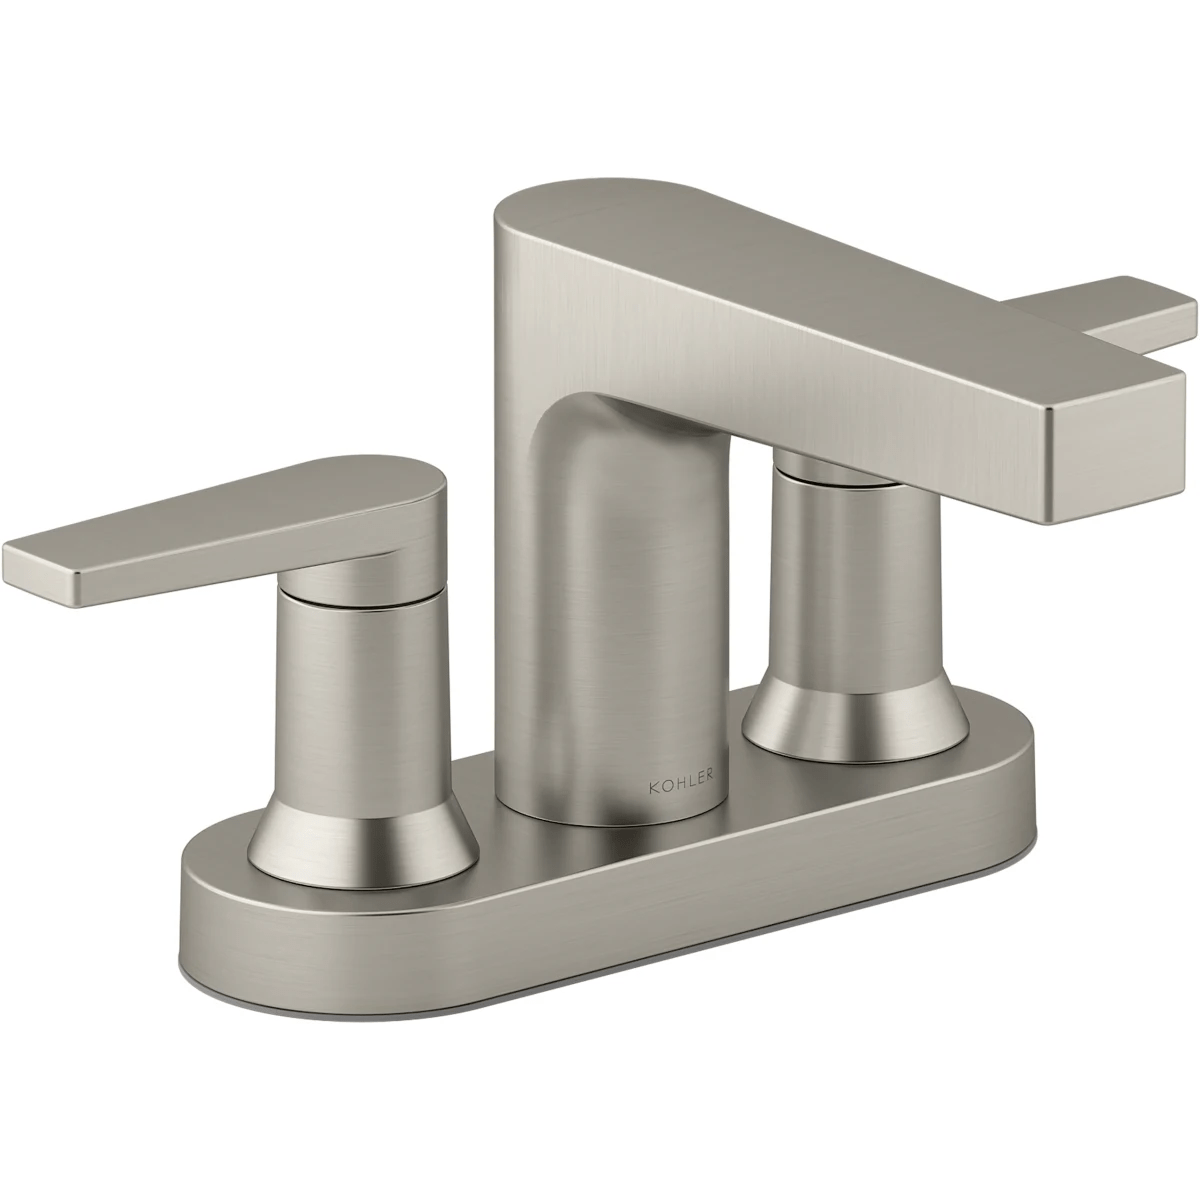 k 97031 4 kohler taut 1 2 gpm bathroom sink faucet centerset bathroom faucet with pop up drain assembly tutto moderno